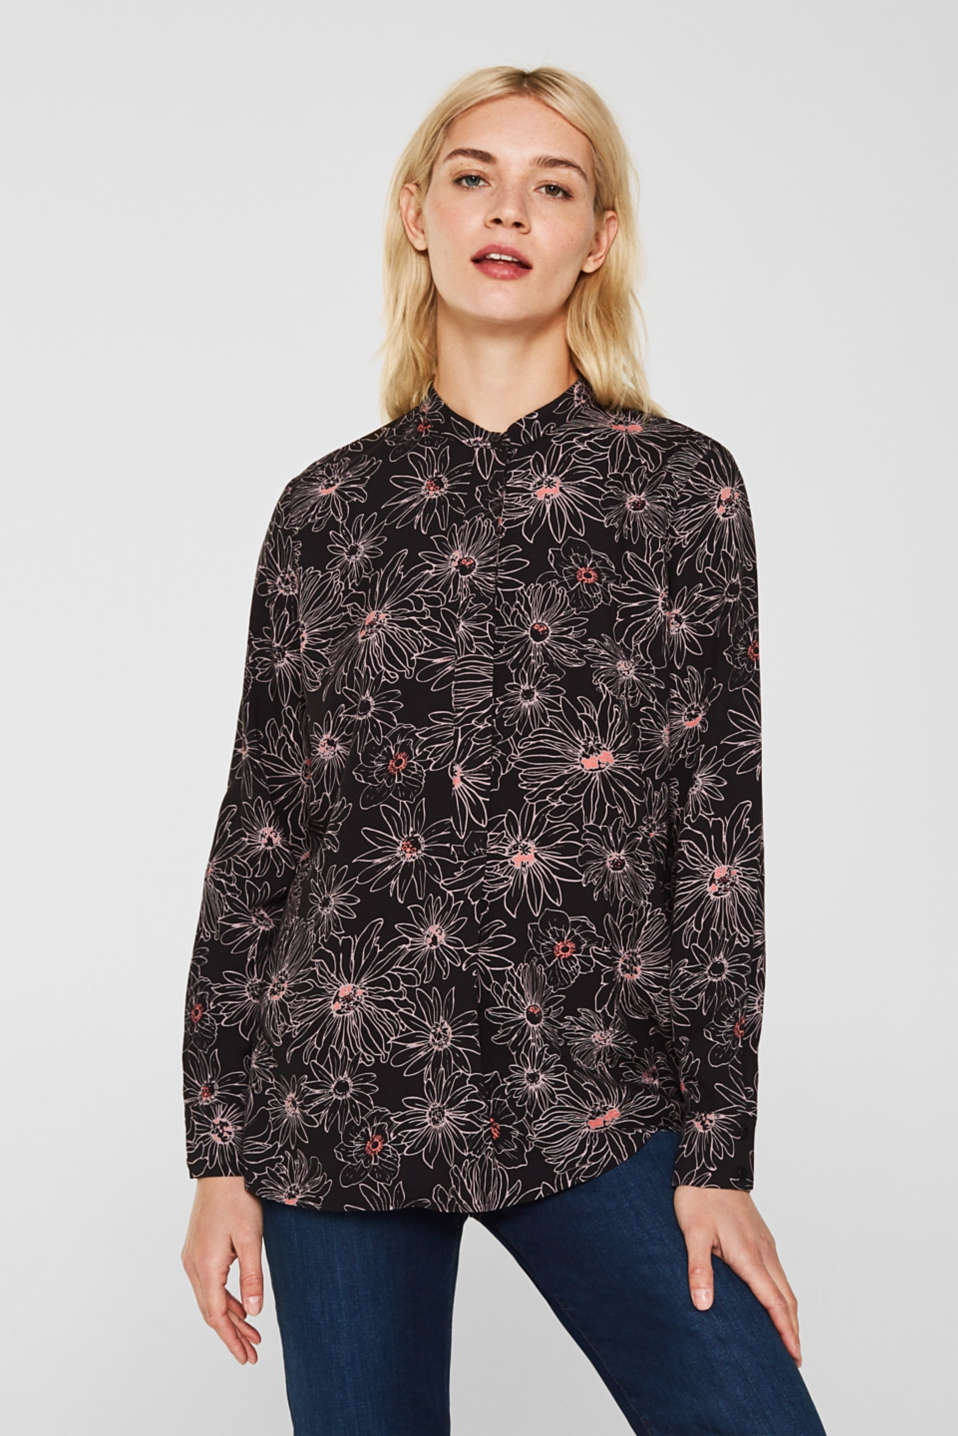 Slip-on blouse with a print and band collar, BLACK 3, detail image number 0